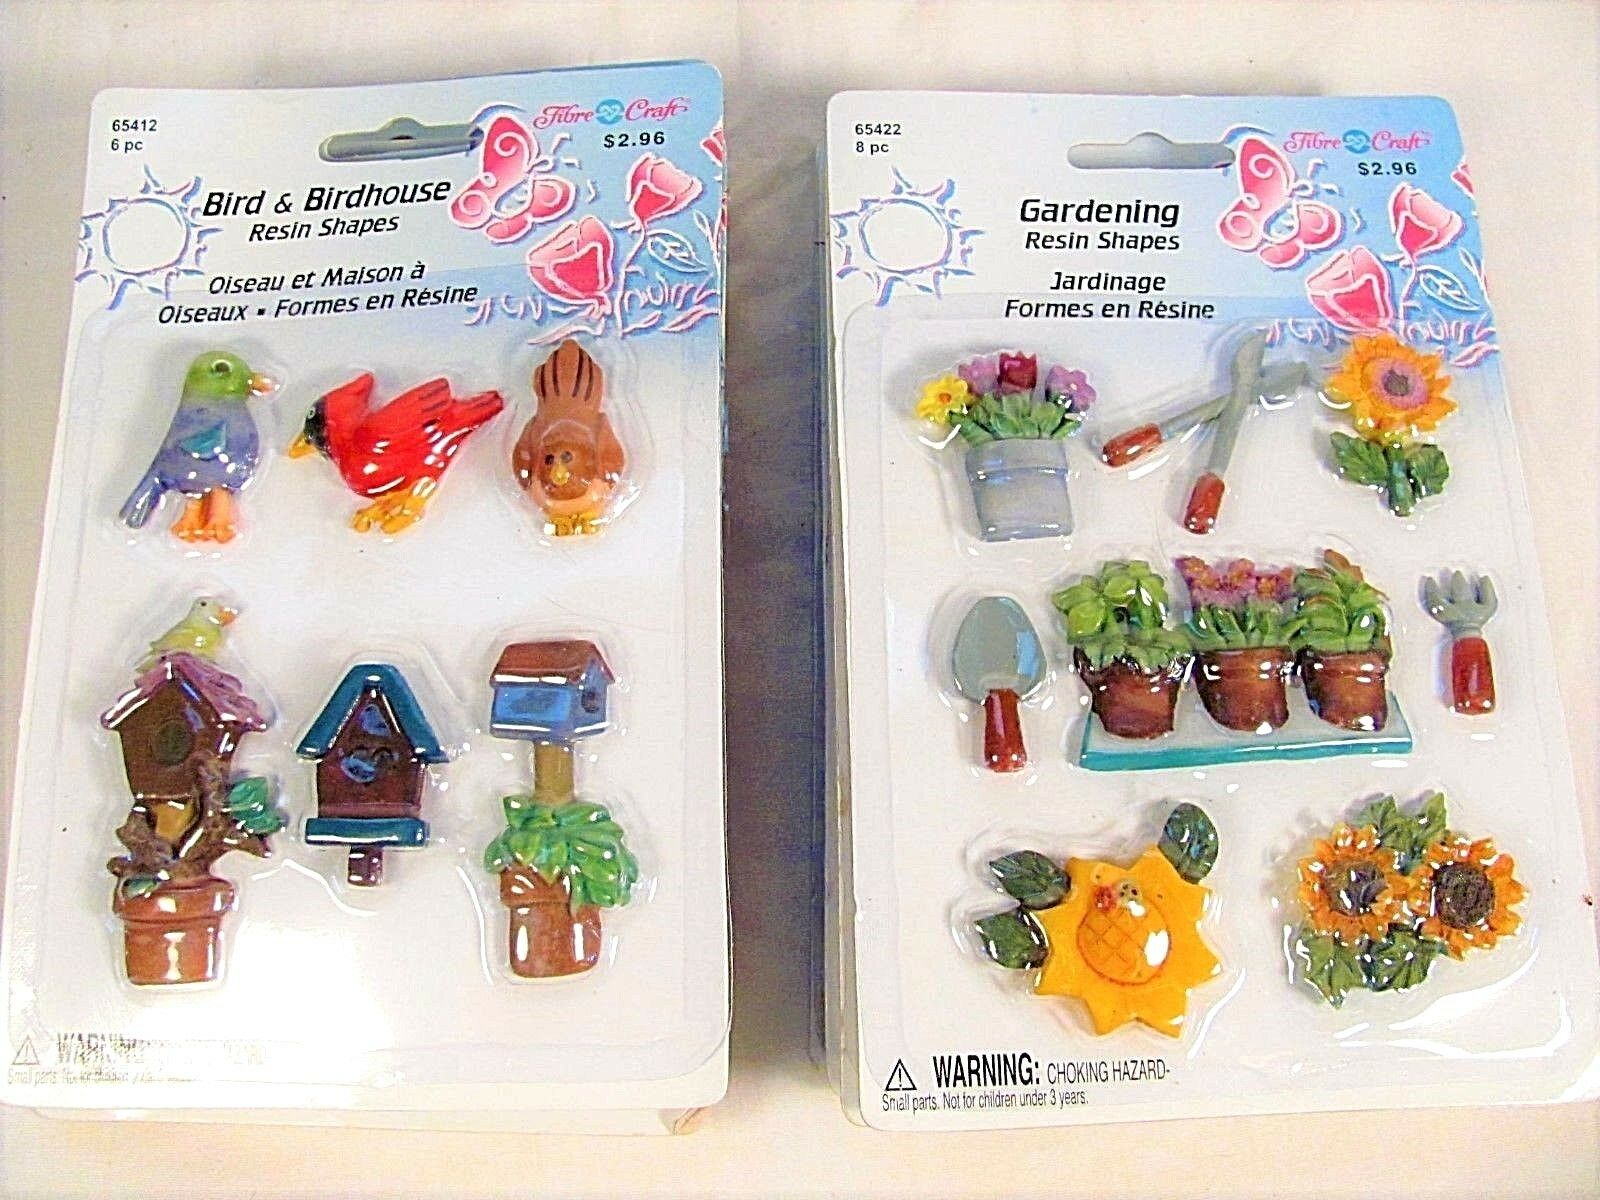 Art Decorating And Crafting 8 Packages Fibre Craft Resin Plastic Crafting Pieces Decorating